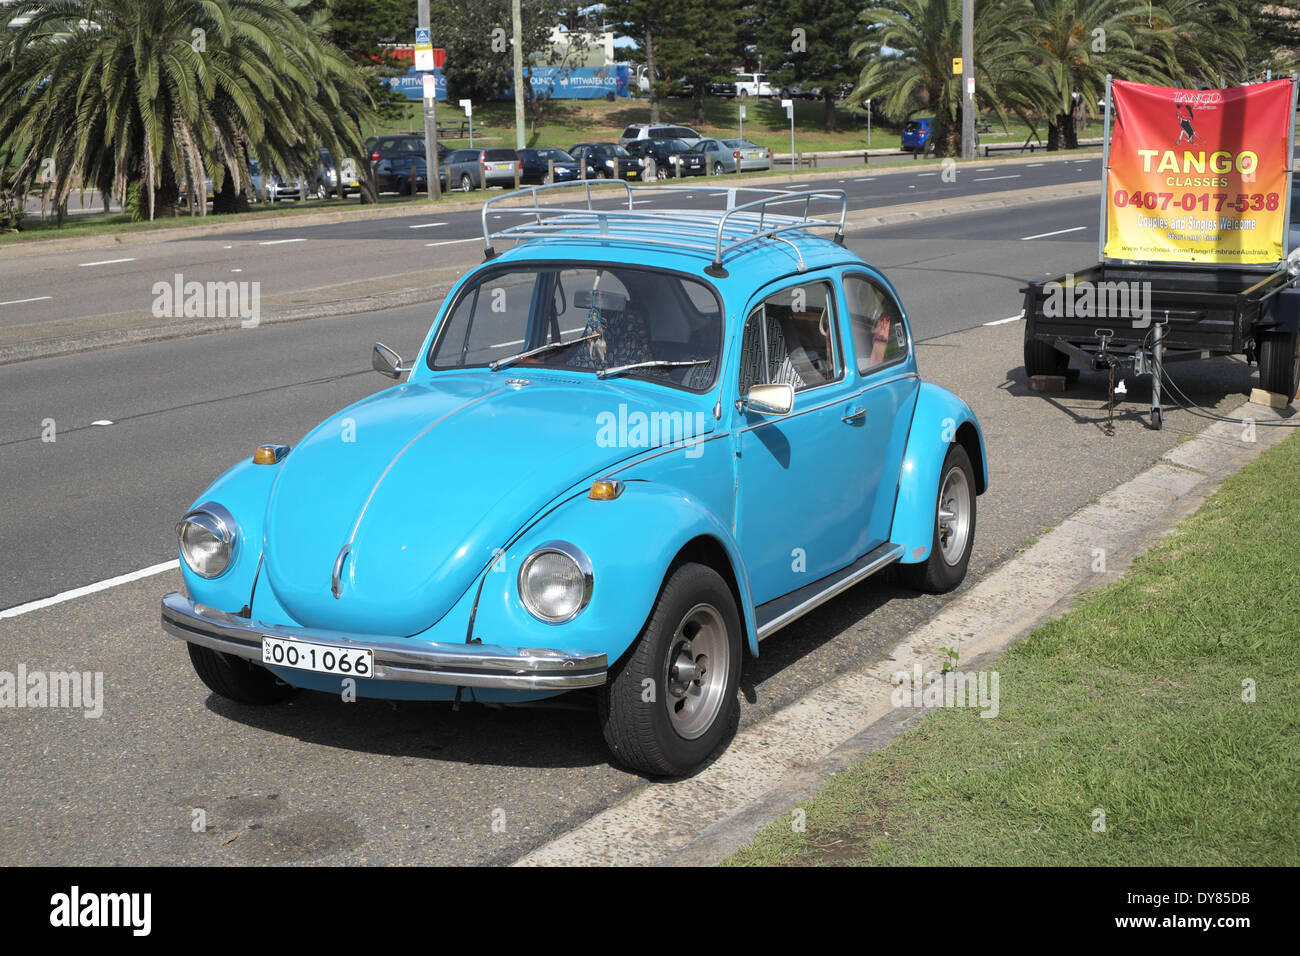 classic vw beetle on pittwater road,sydney,australia - Stock Image